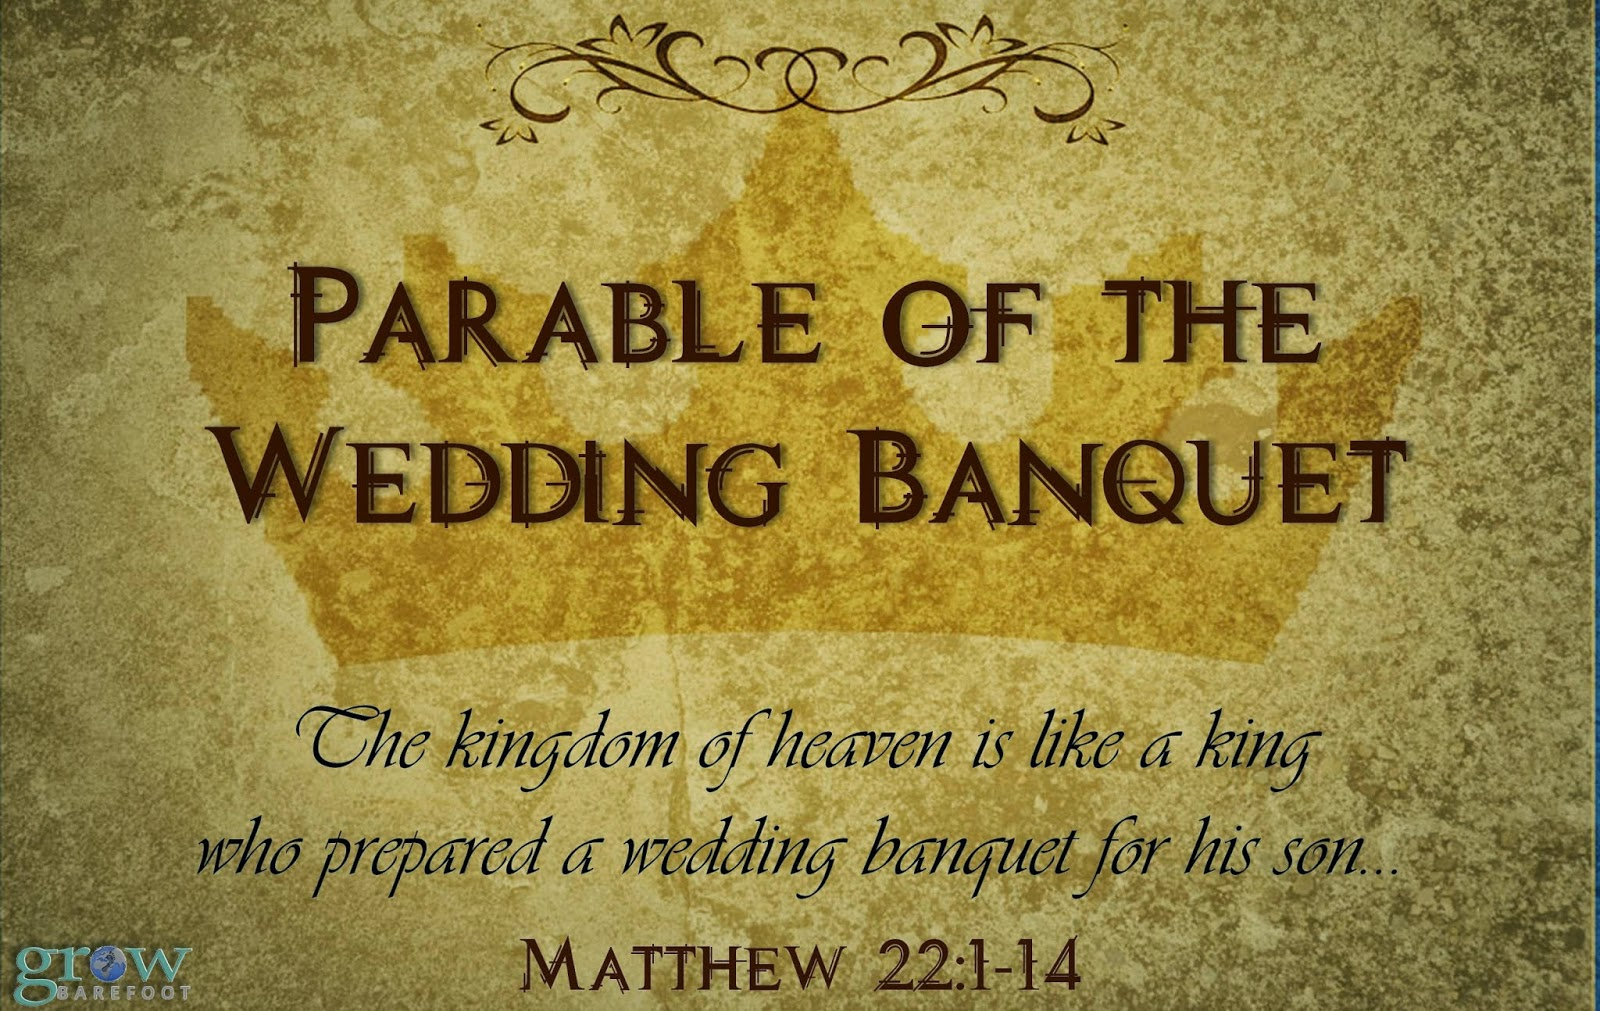 Grow Barefoot: Choice...The Parable of the Wedding Banquet